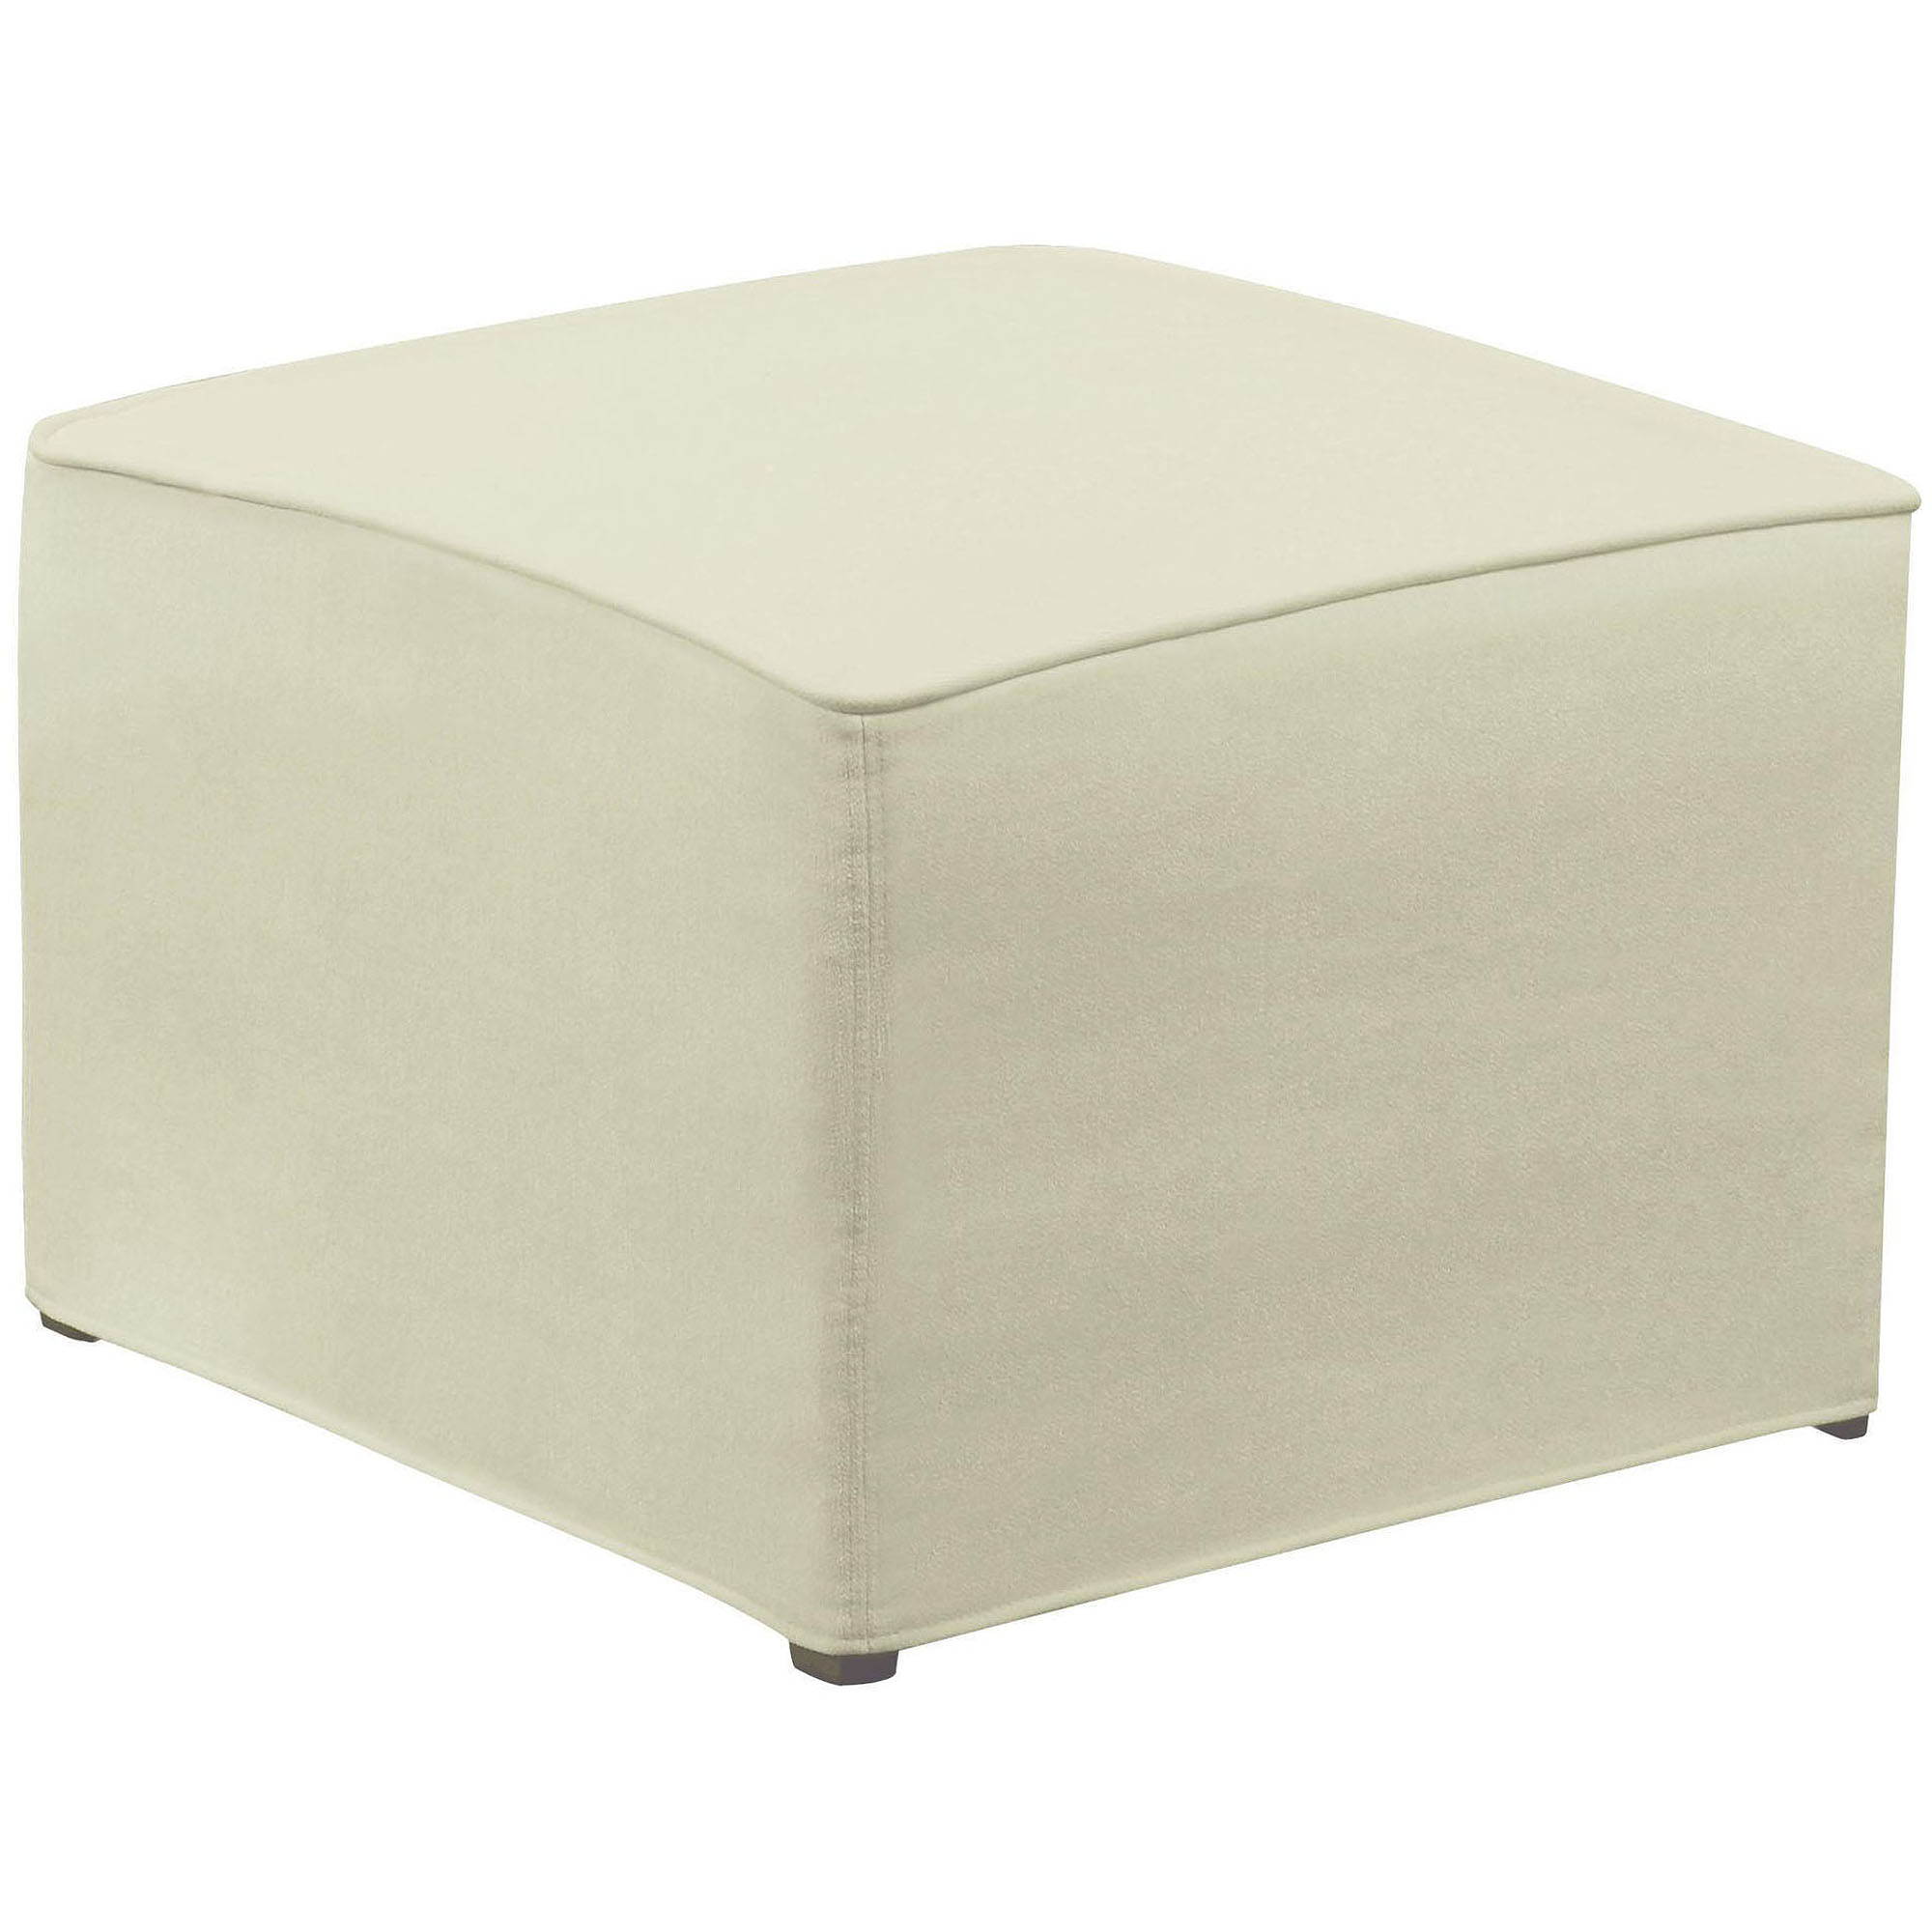 Dorel - Ottoman (Slipcover Sold Separately)